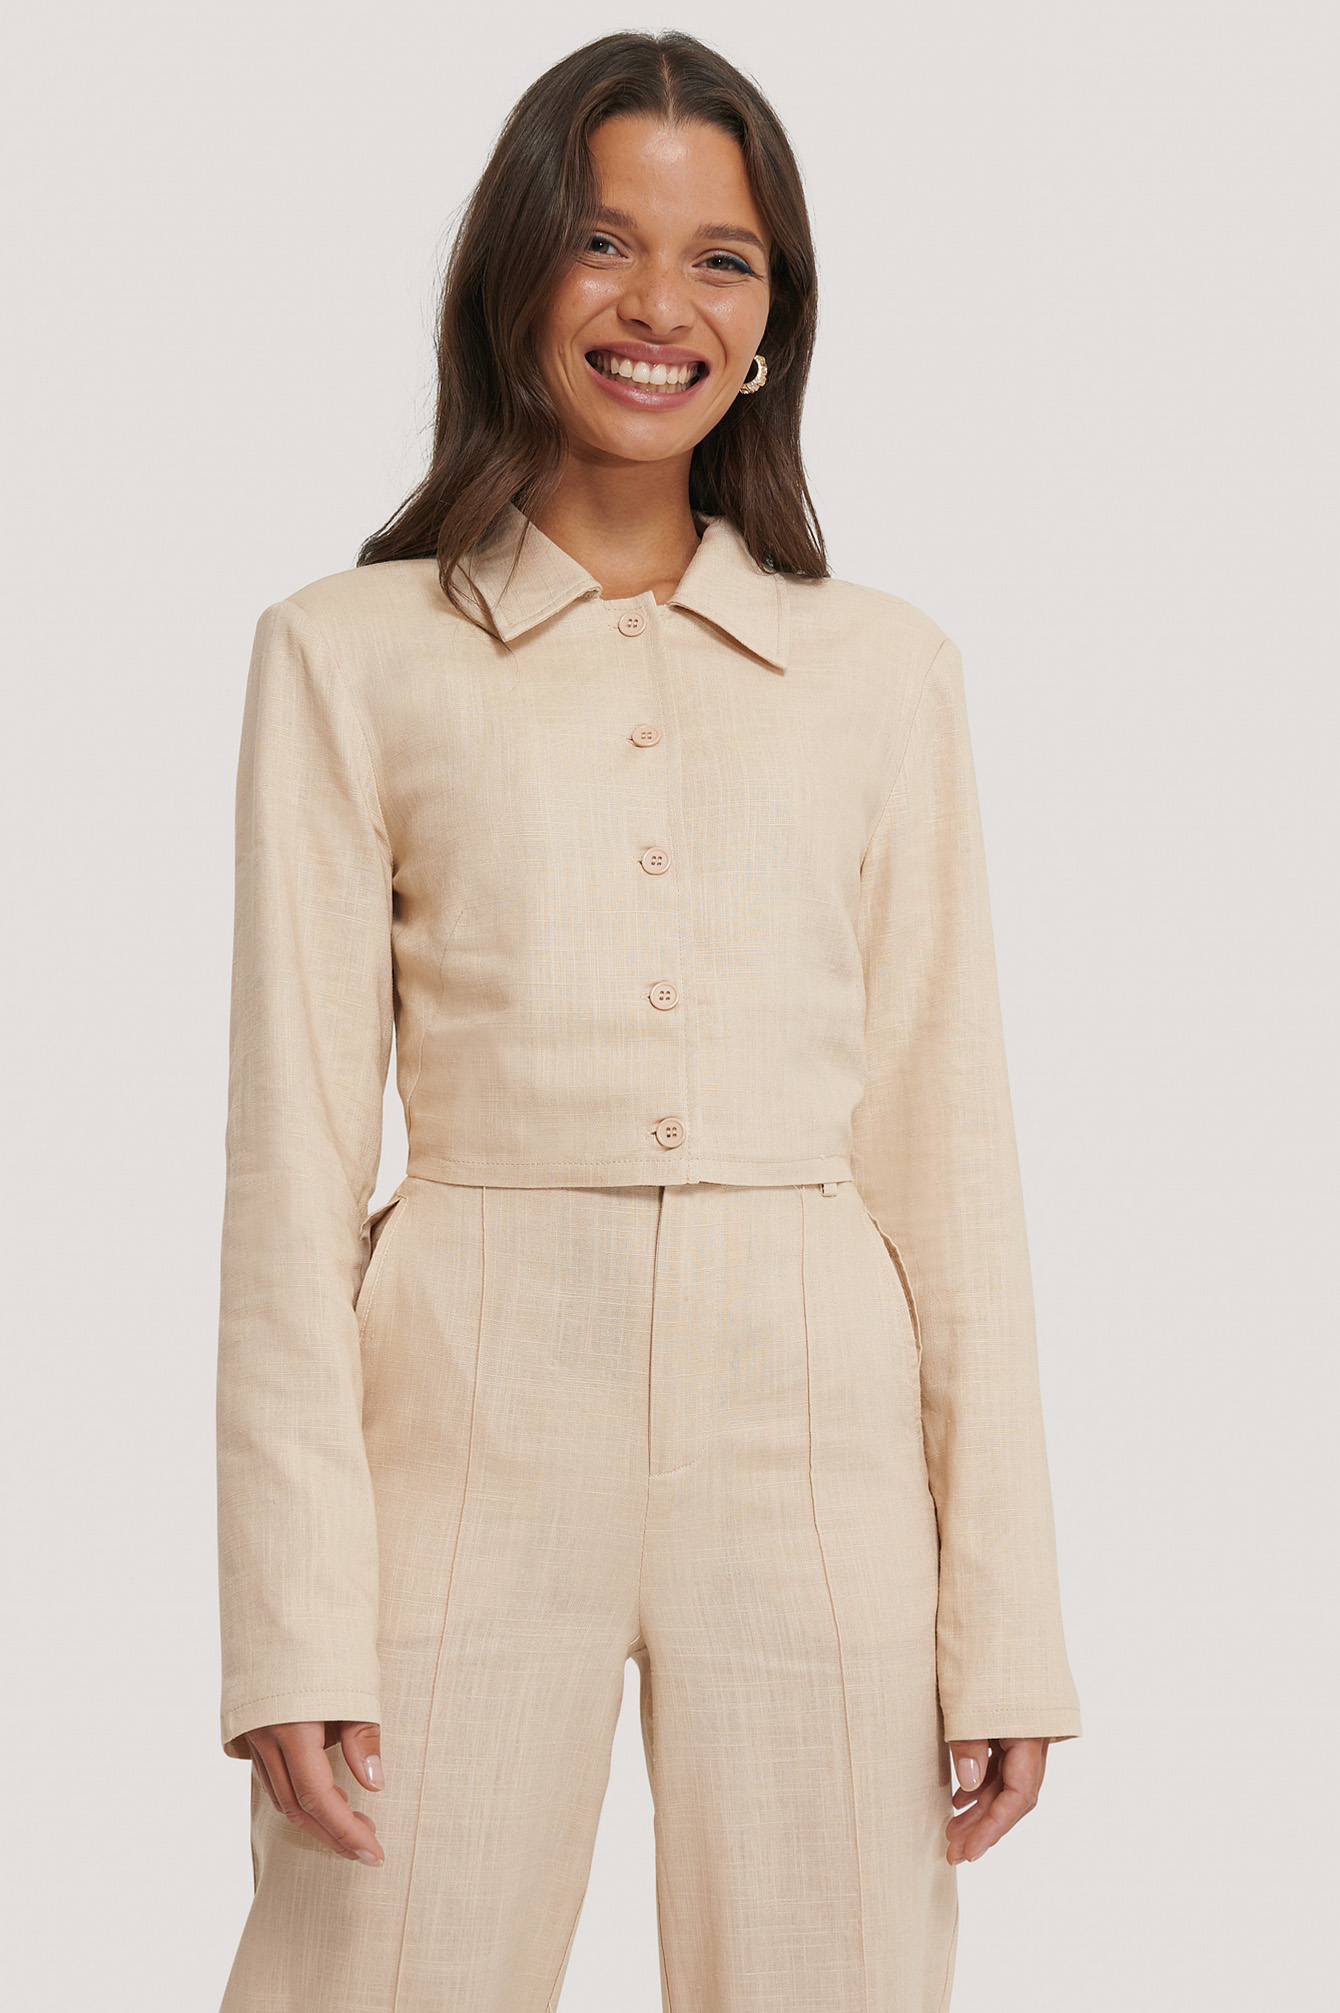 Light Beige Short Linen Blend Jacket